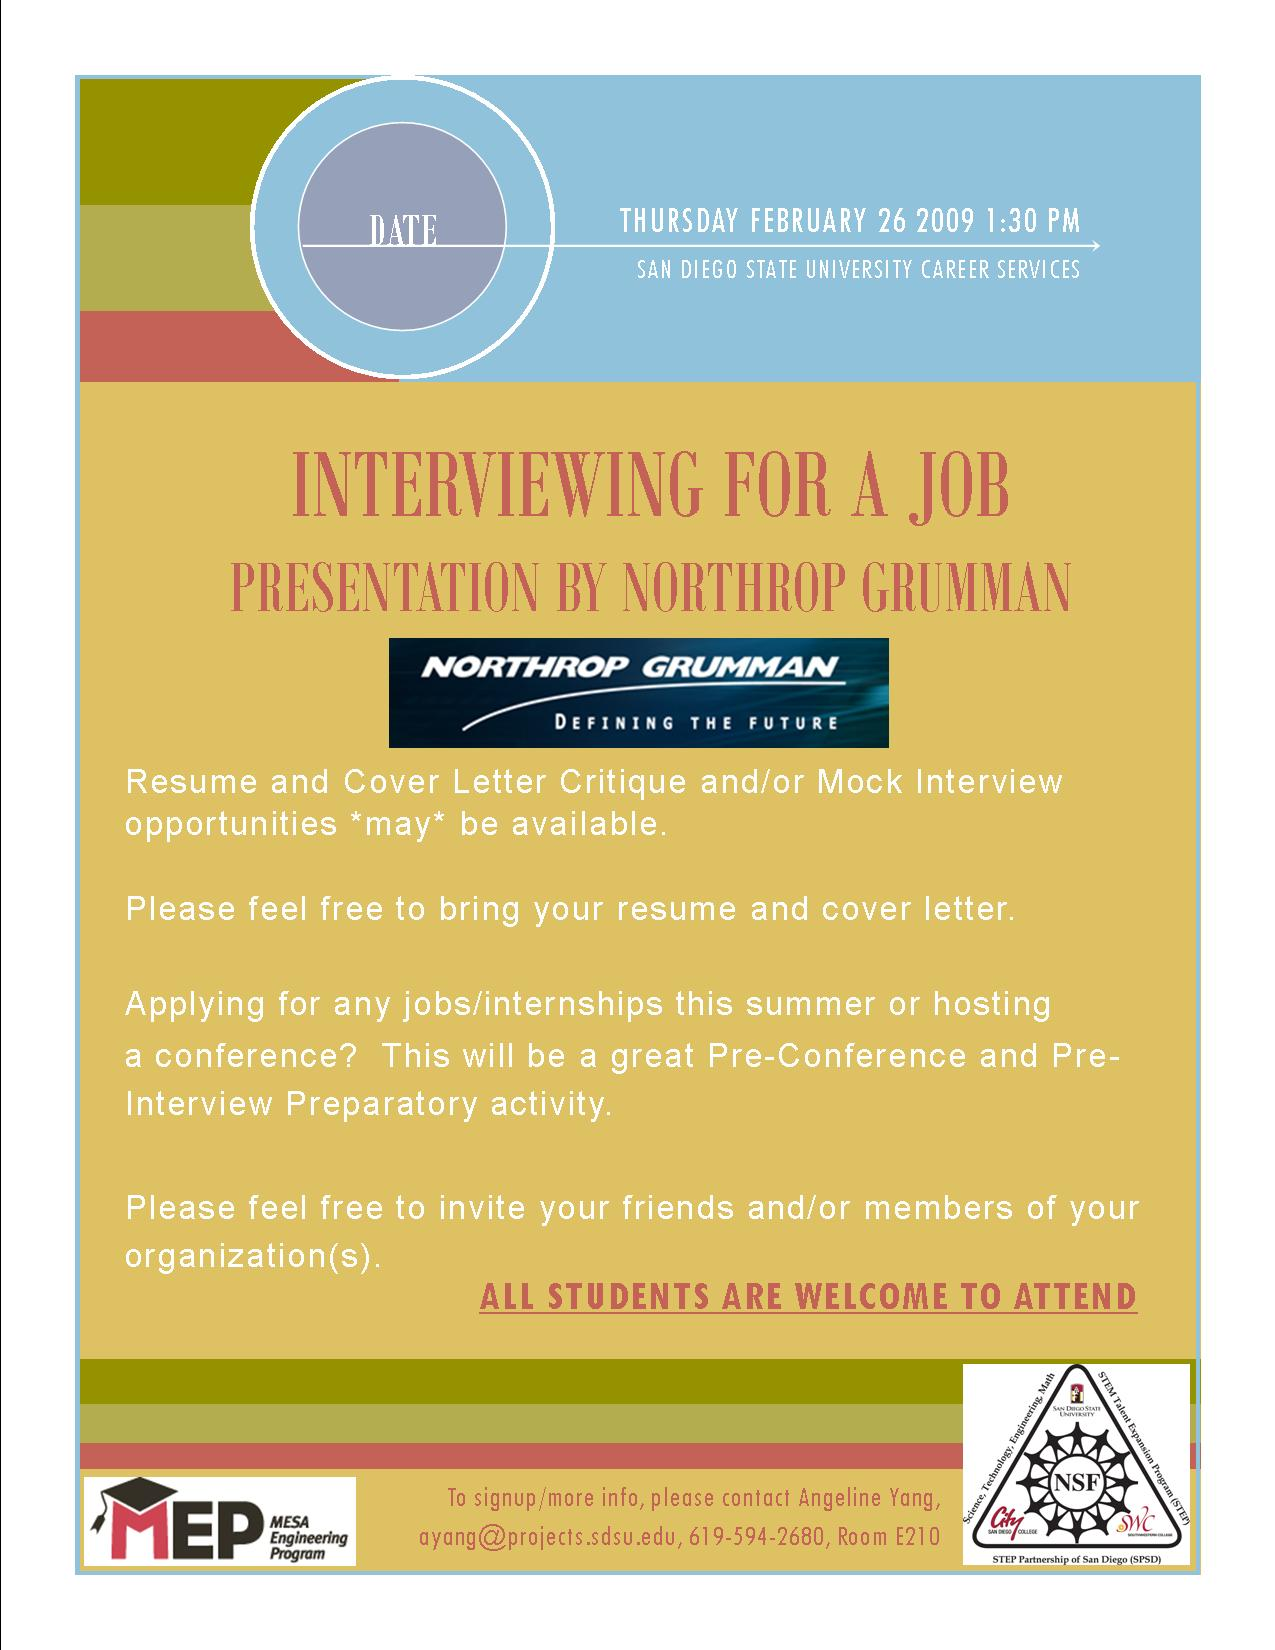 Interviewing For A Job – San Diego MESA Alliance